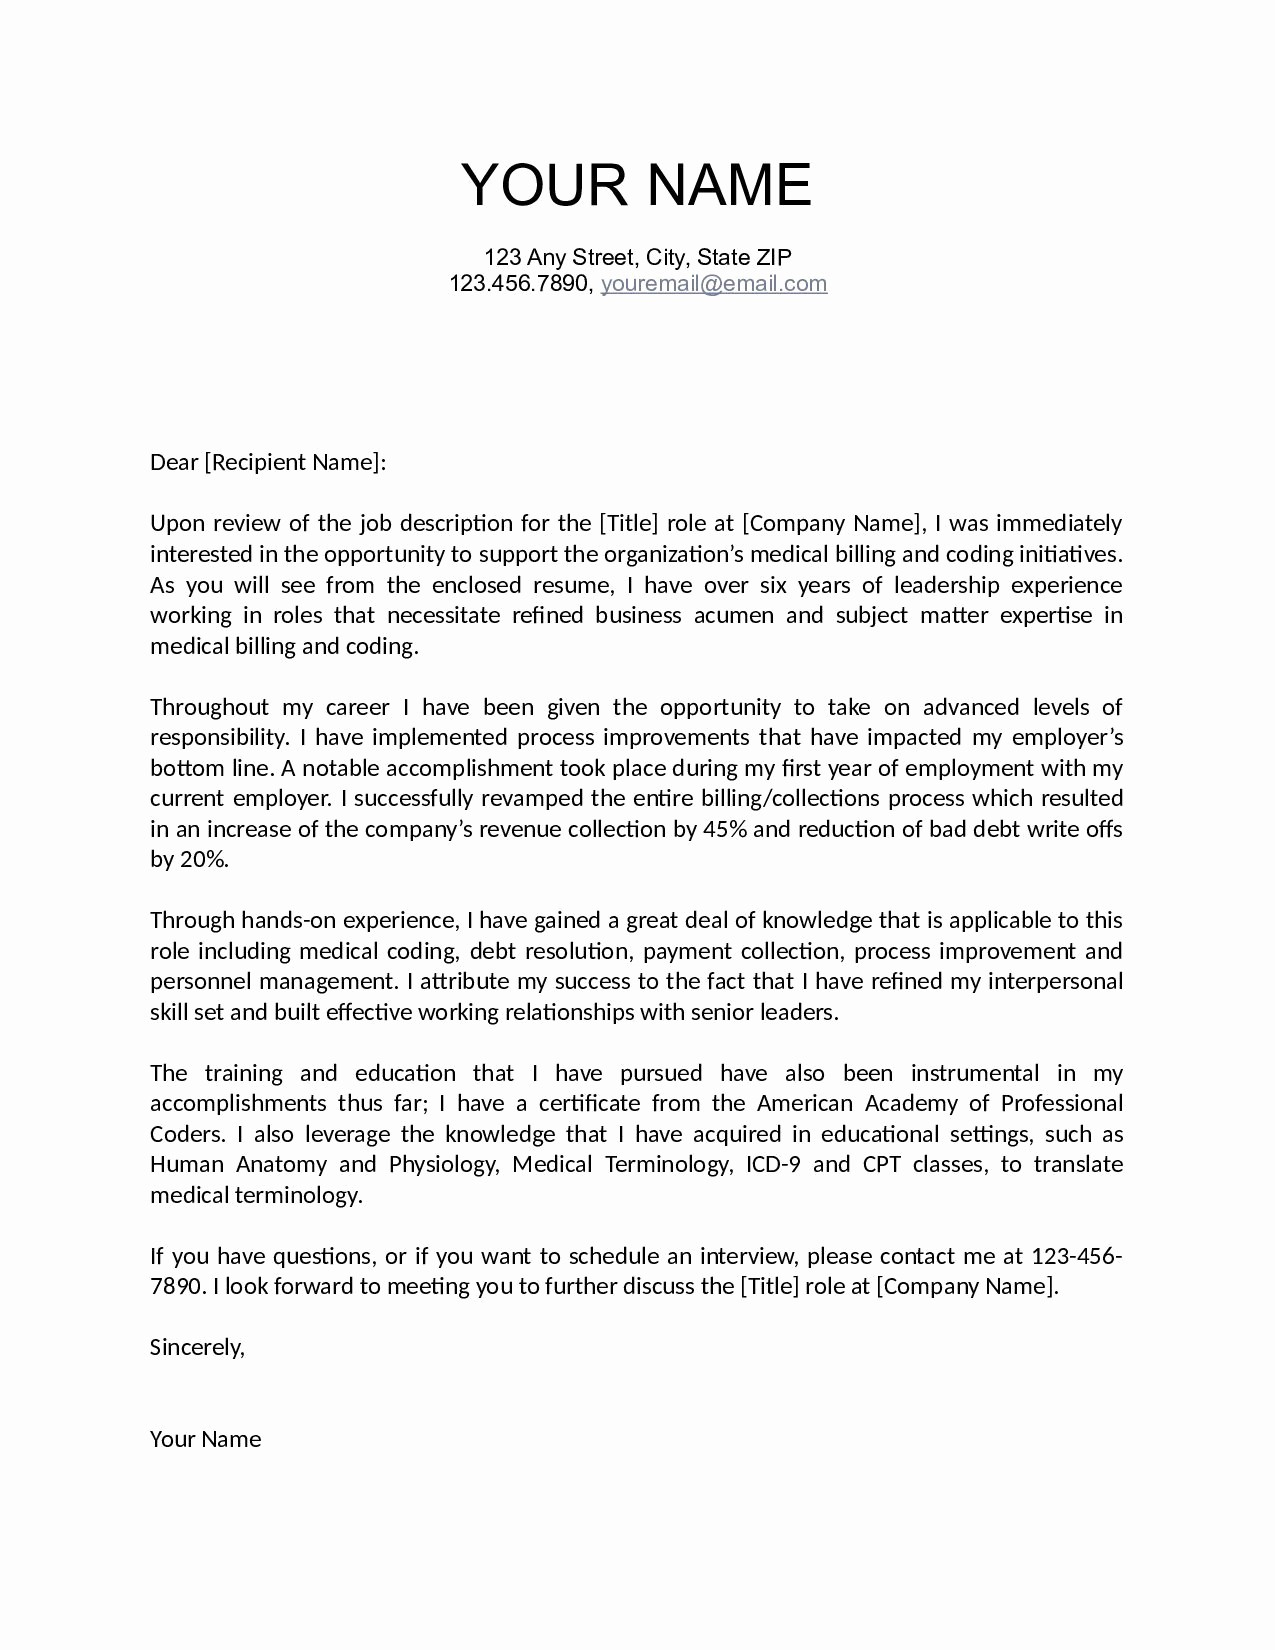 traditional cover letter template examples letter templates